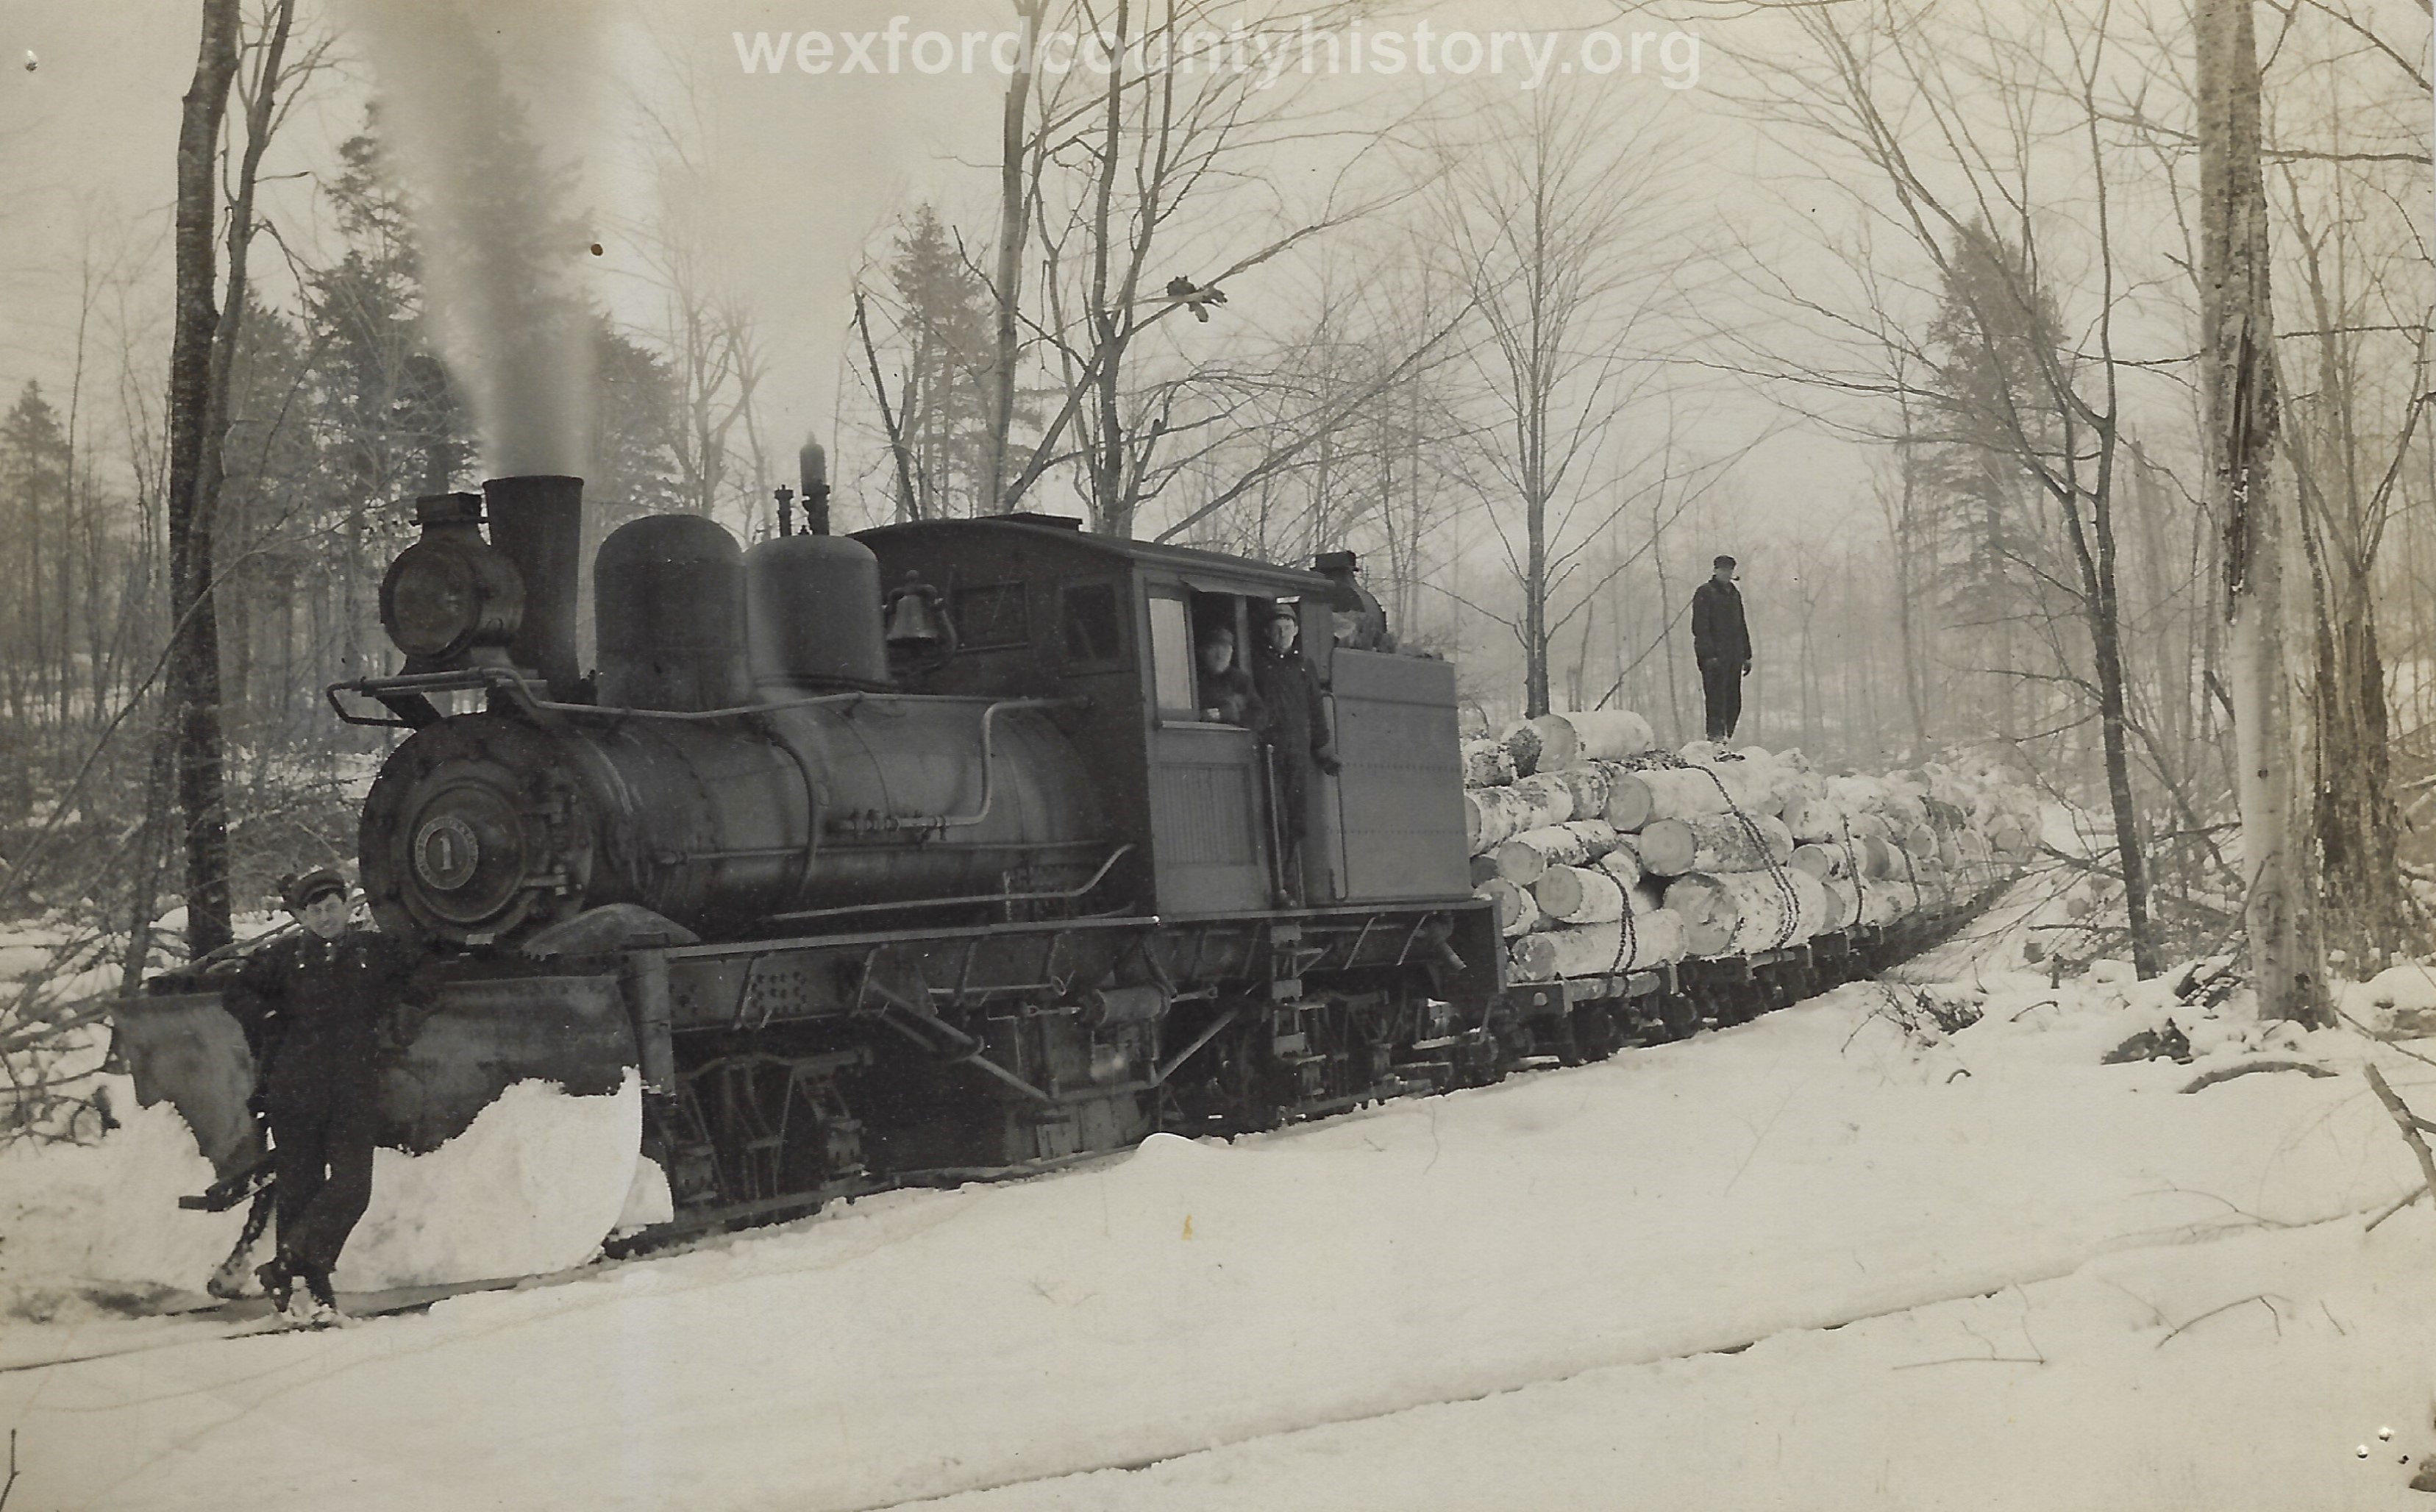 Cadillac-Lumber-Locomotive-With-Plow-Attachement-Pulls-Logs-From-The-Wilderness